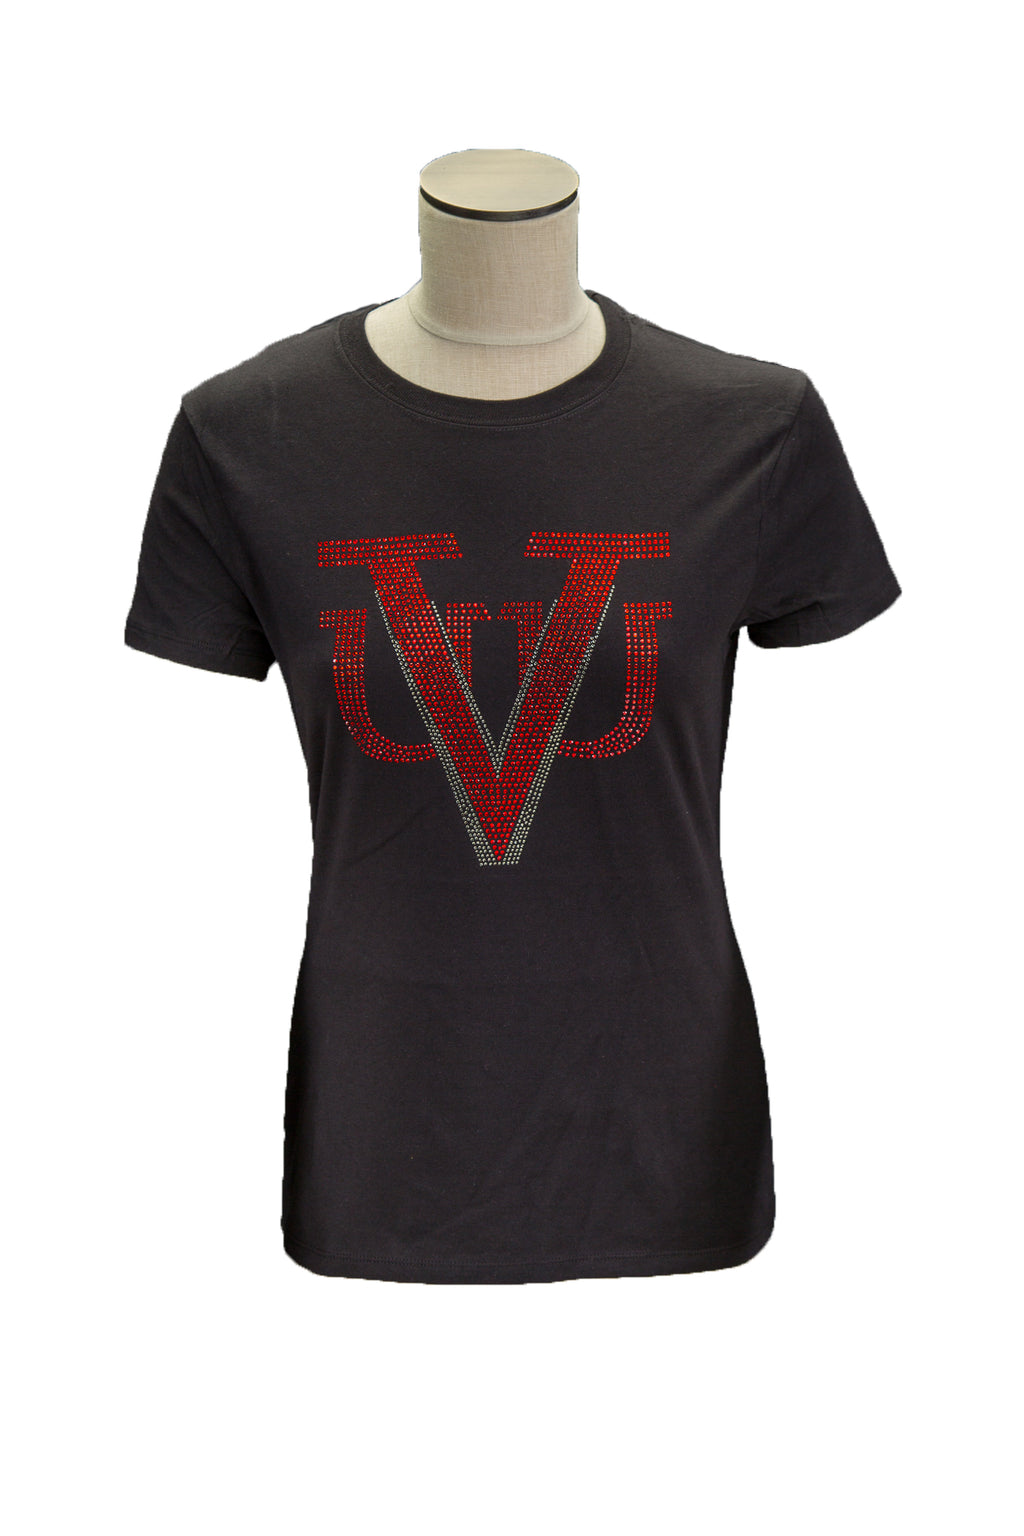 Virginia Union University Bling Shirt